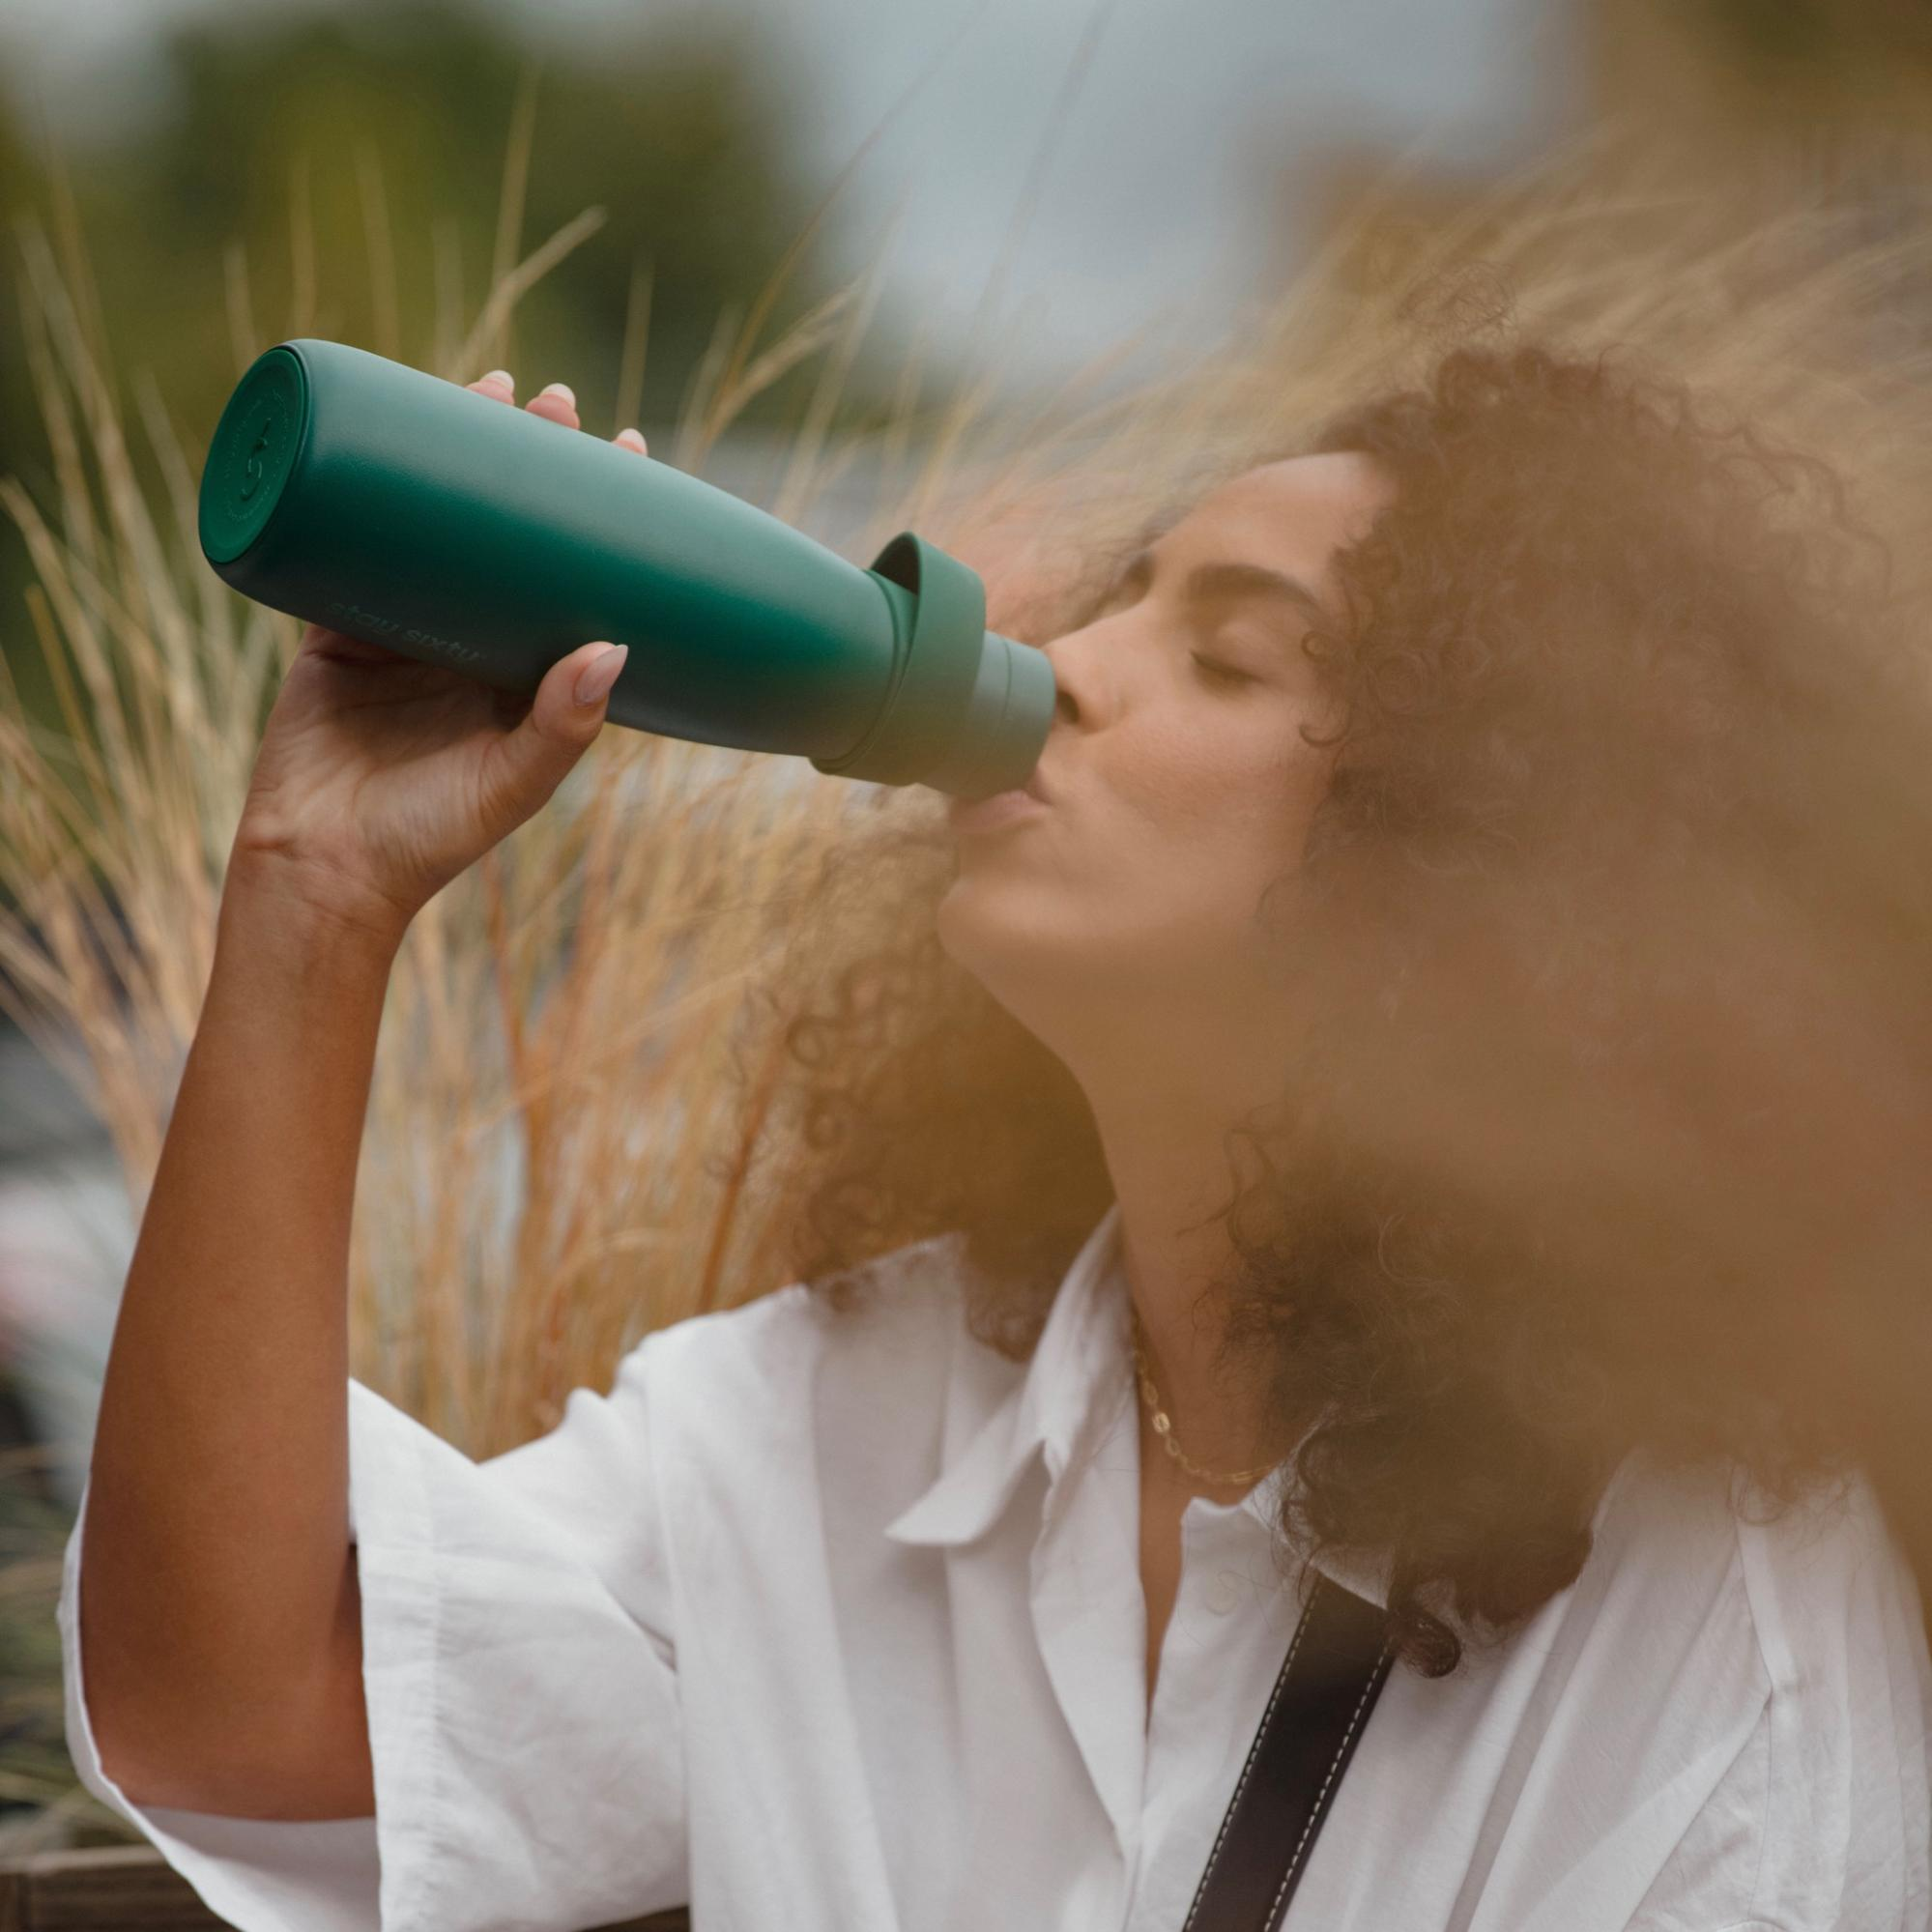 A model using an emerald water bottle from Stay Sixty.